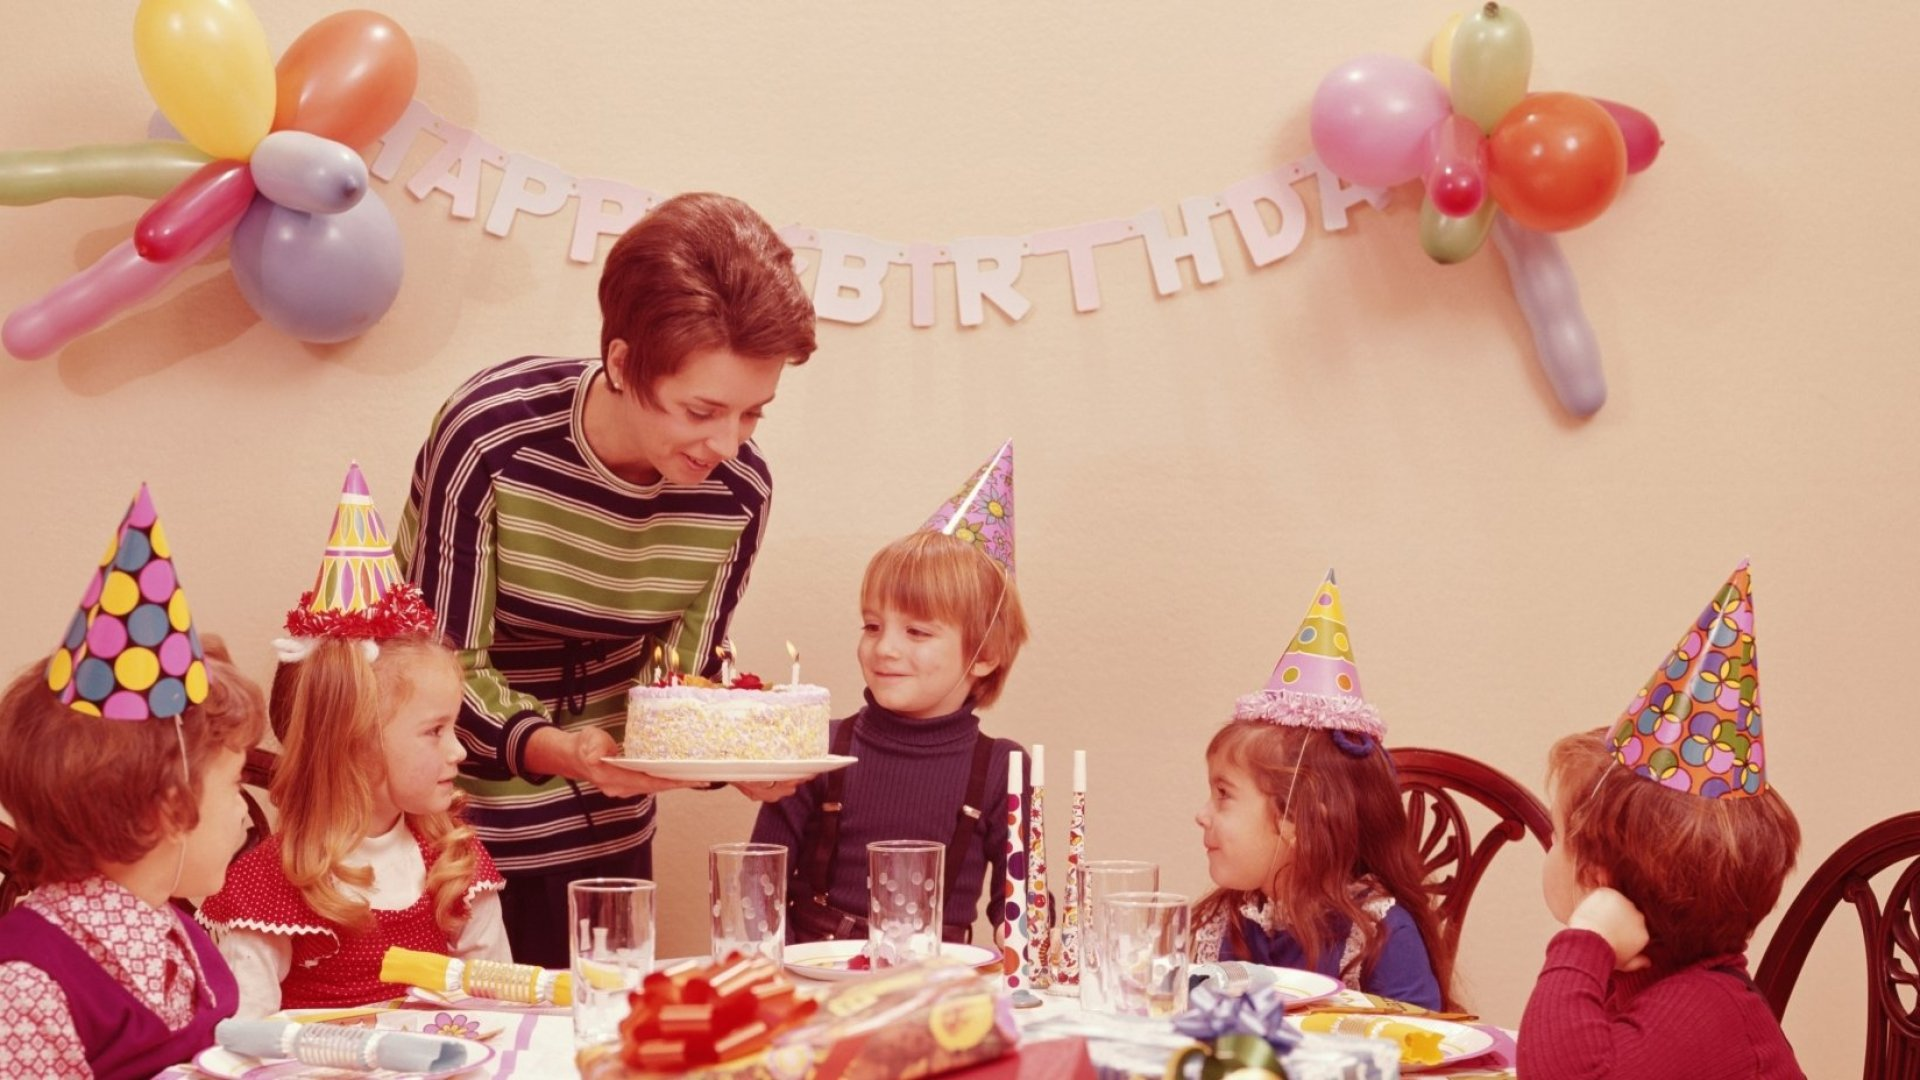 The Big Copyright Surprise Behind 'Happy Birthday to You'